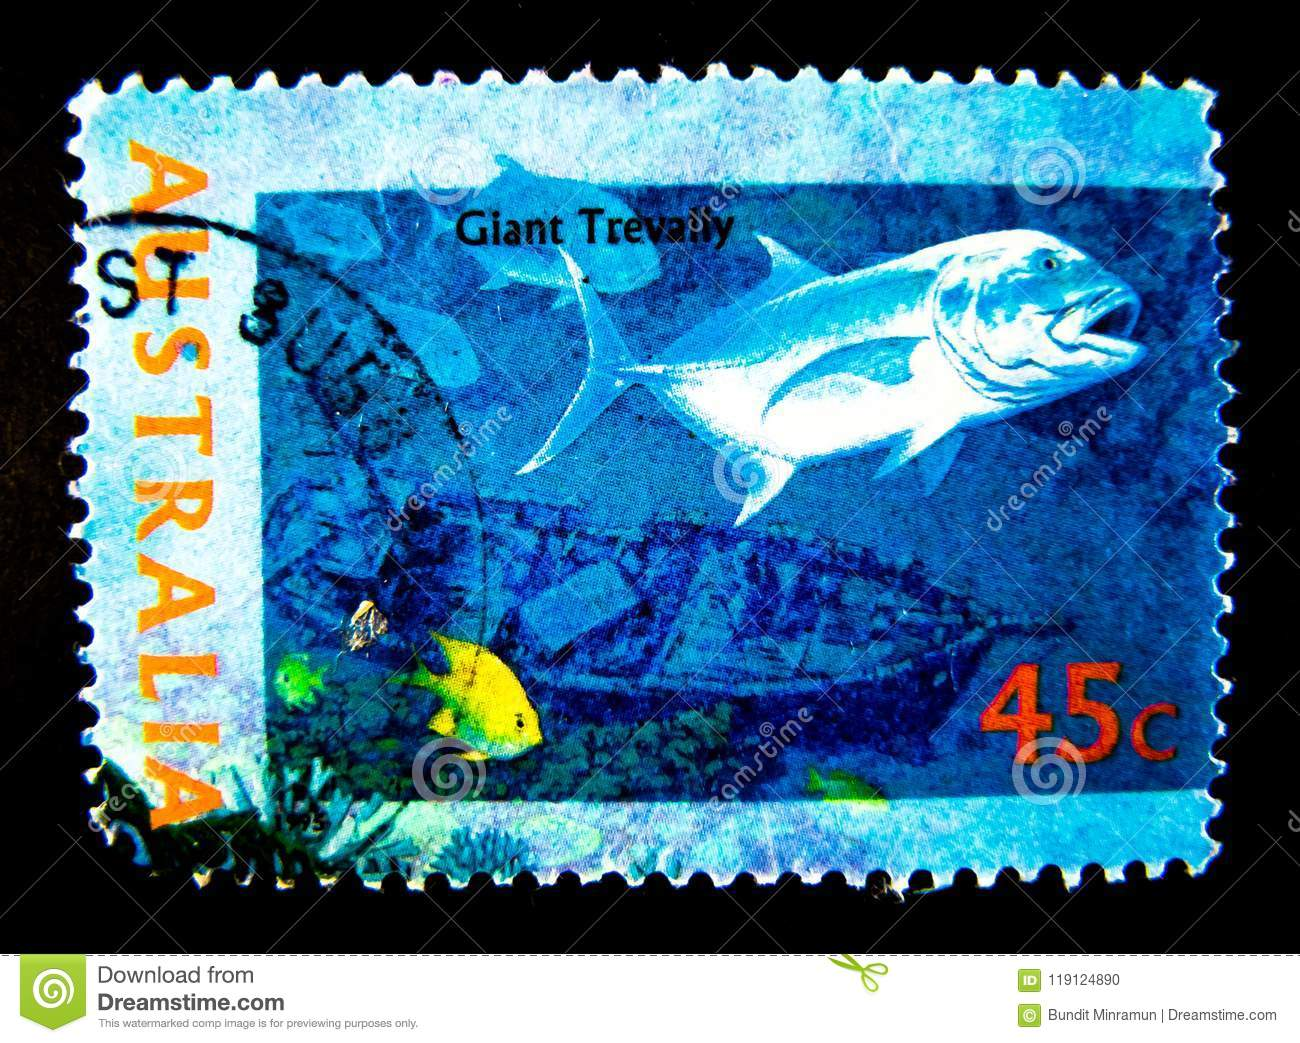 A Stamp Printed In Australia Shows An Image Of Giant Trevally Fish On Value At 45